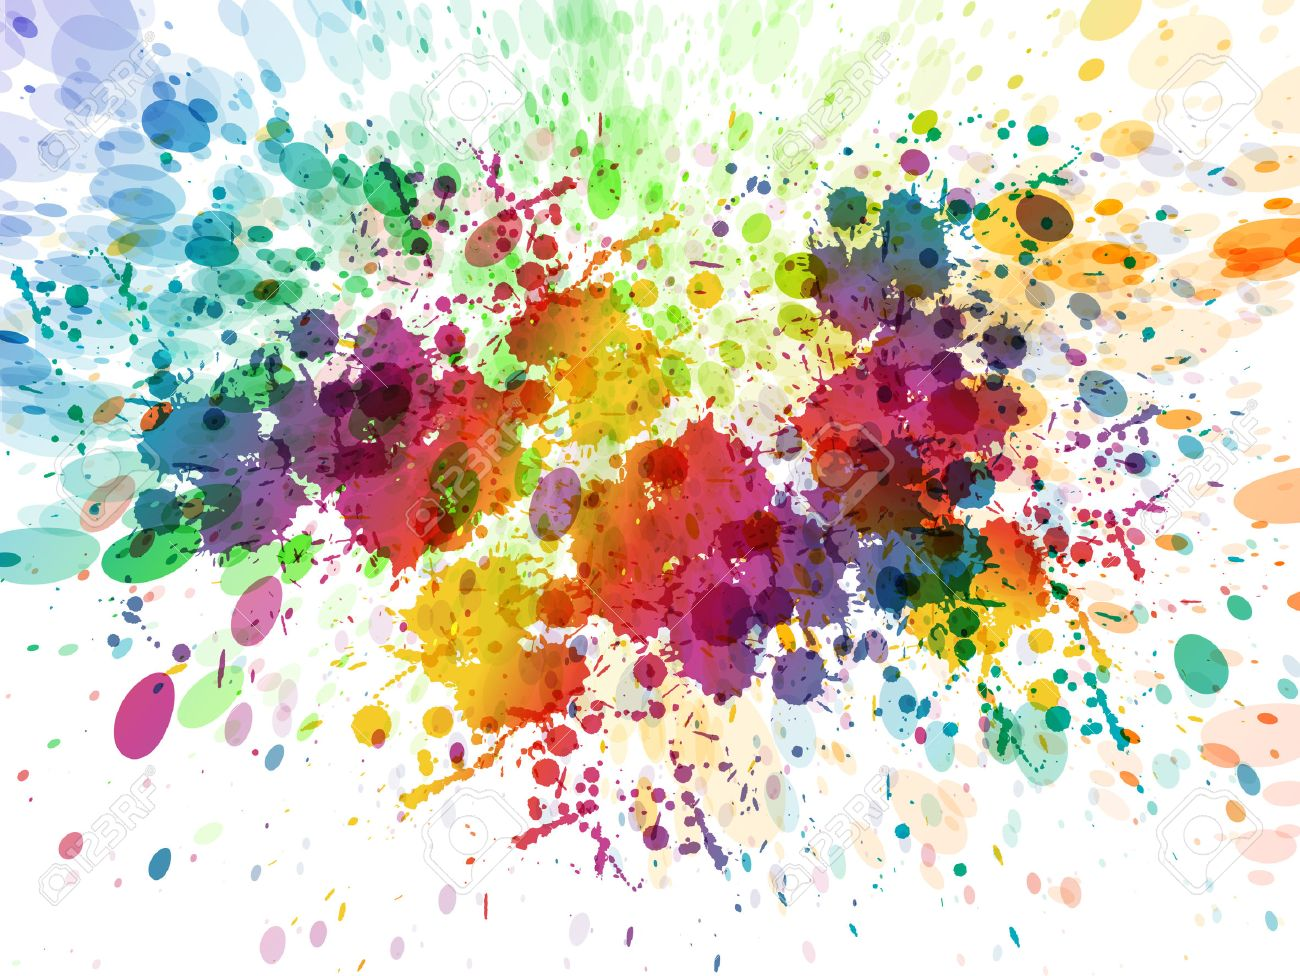 Abstract Color Splash Watercolor Background Illustration Royalty